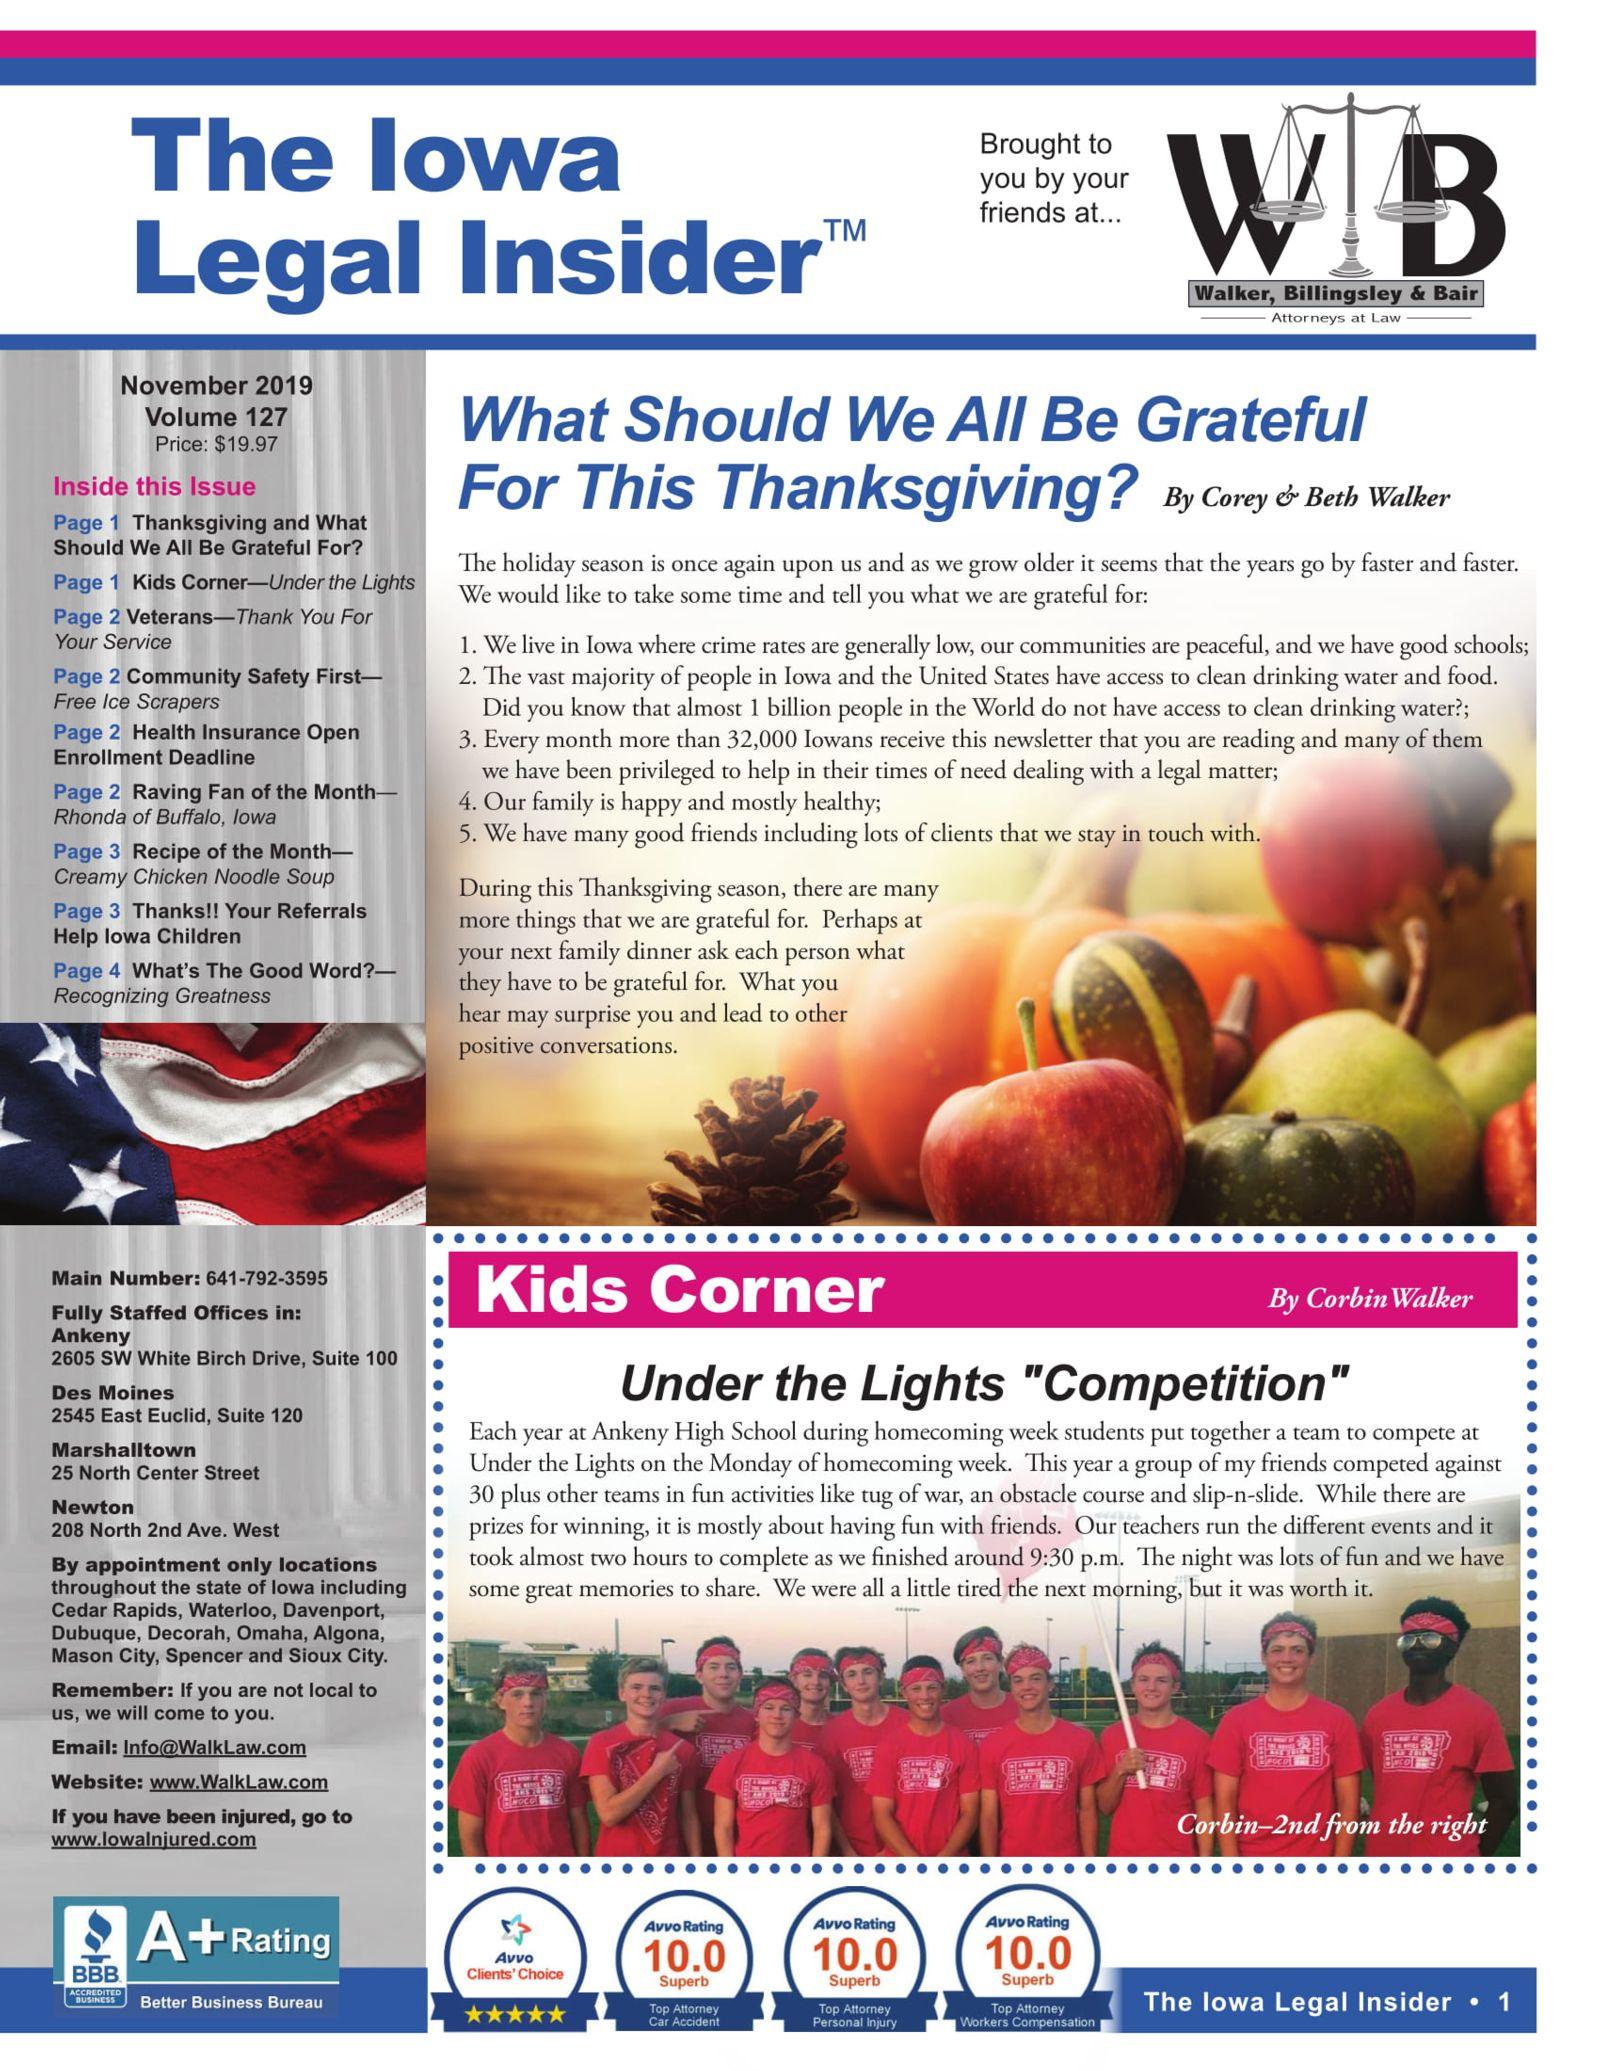 Iowa legal insider what should we be grateful for this thanksgiving